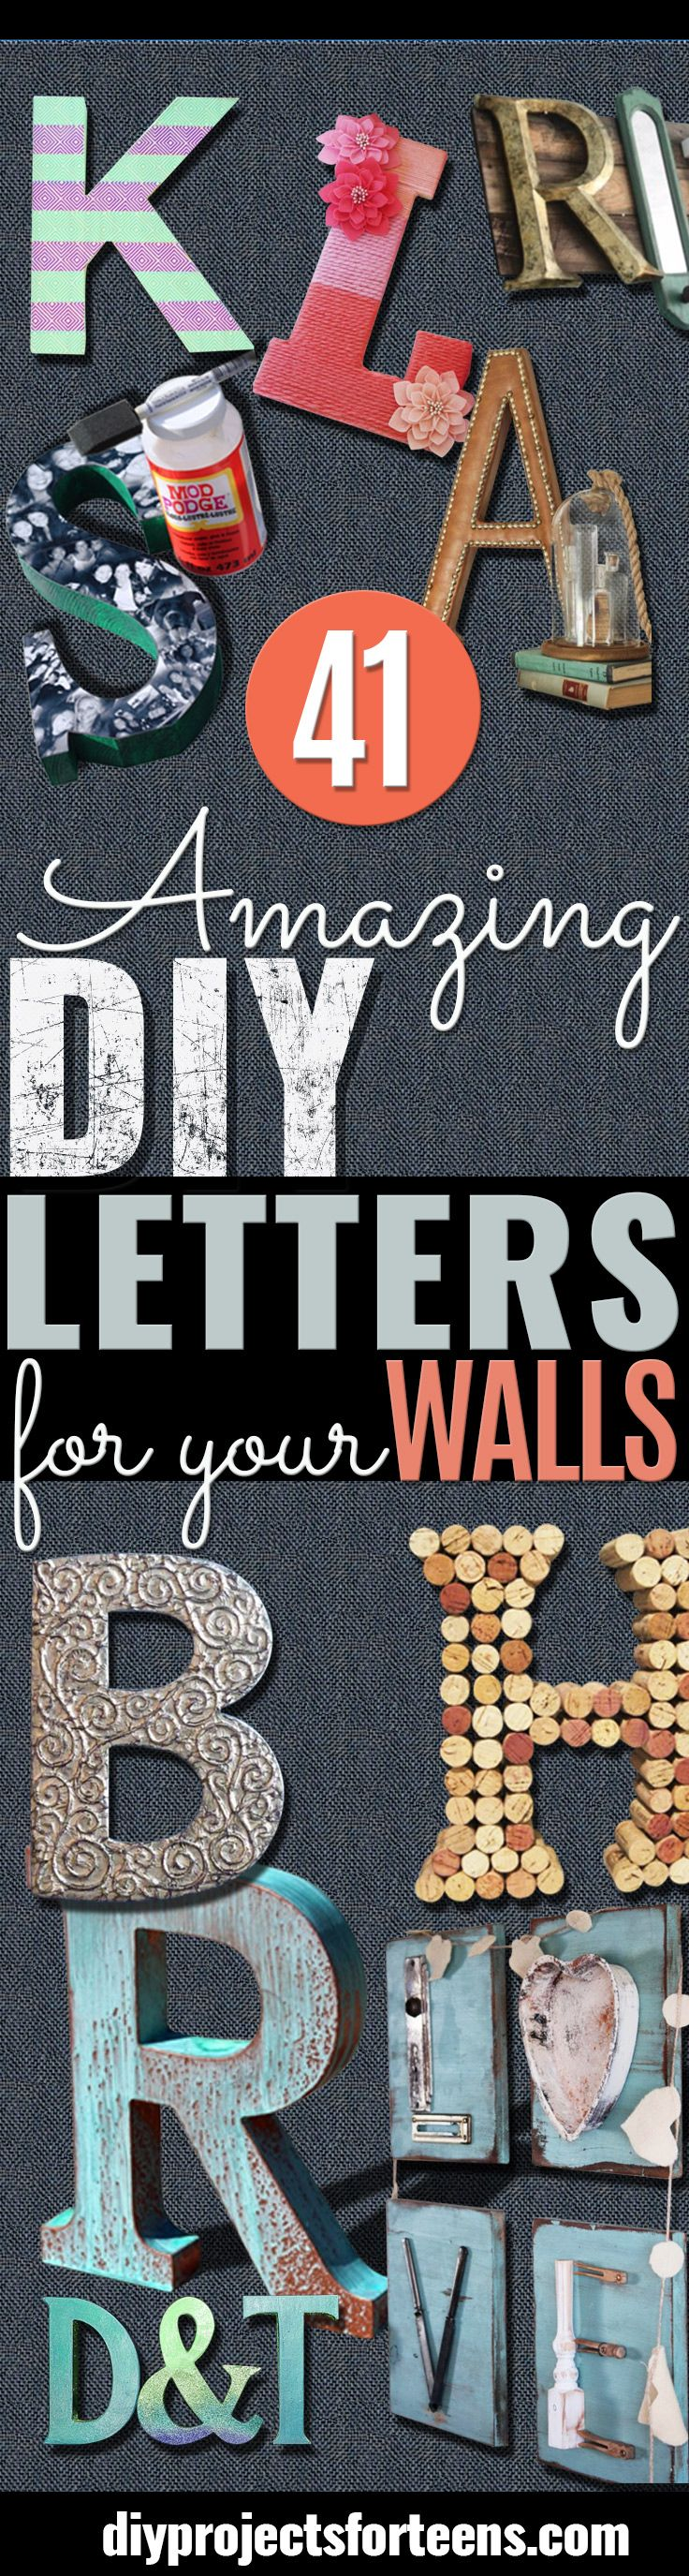 41 amazing diy architectural letters for your walls room decor 41 amazing diy architectural letters for your walls amipublicfo Image collections